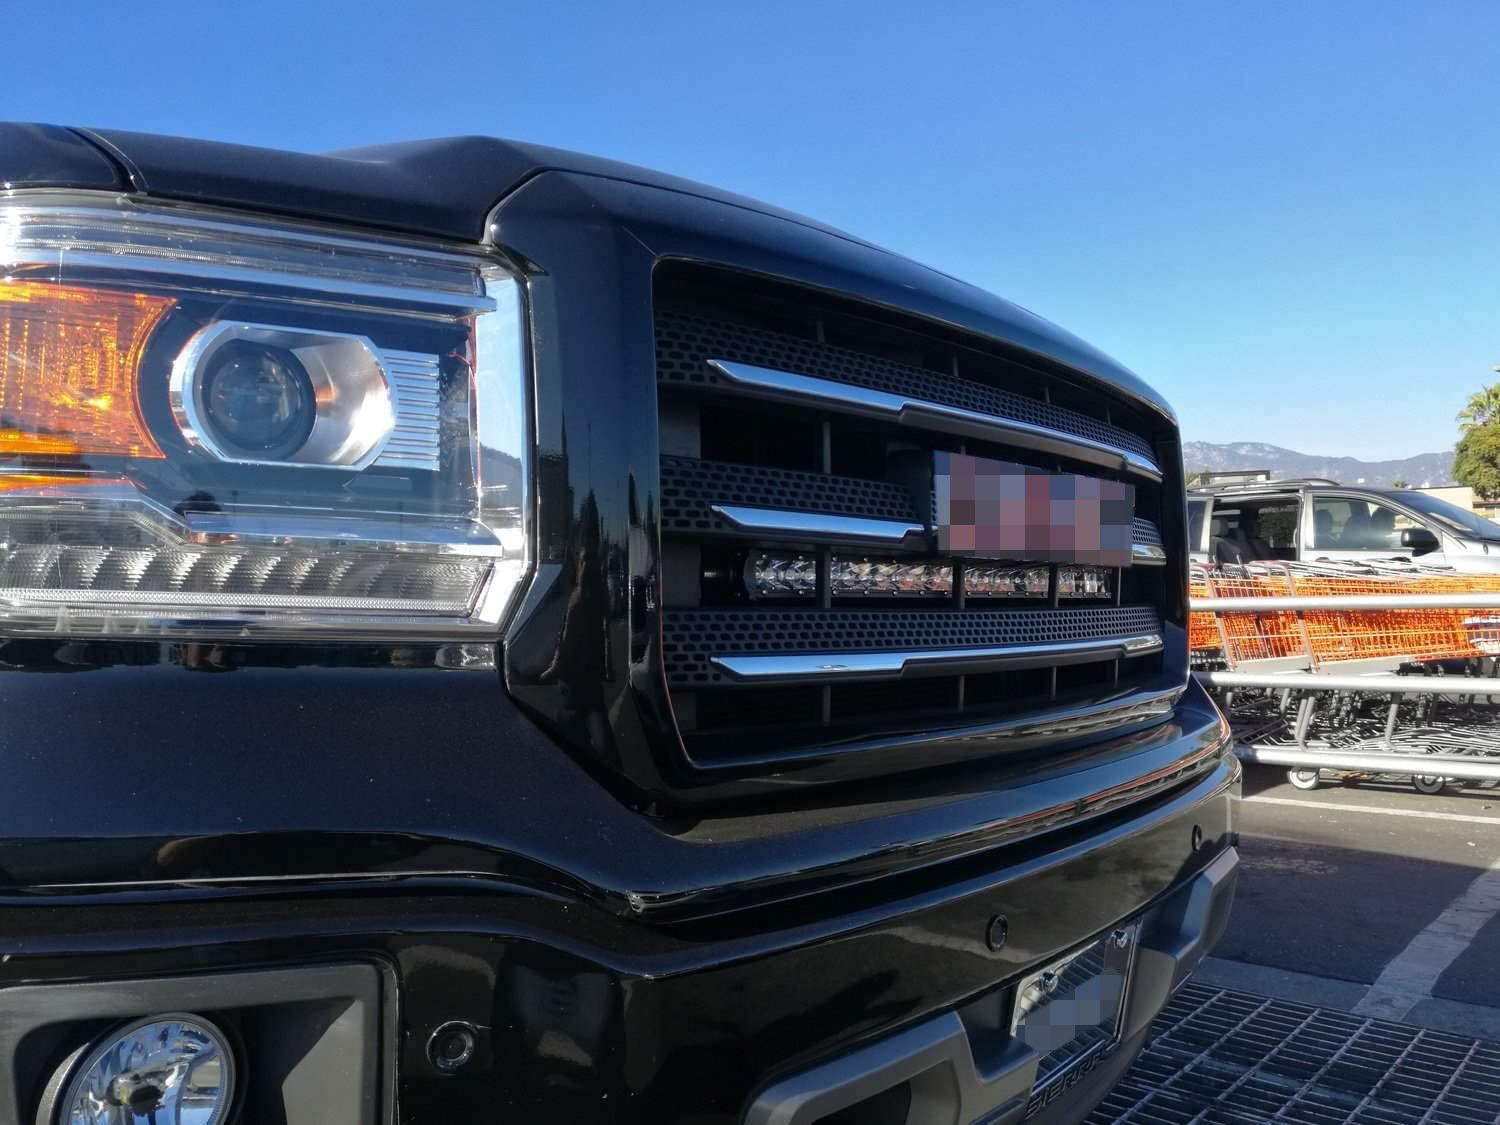 iJDMTOY Behind Grille Mount 30-Inch LED Light Bar Kit Compatible With 2014-18 GMC Sierra 1500 2500 3500 HD 1 150W CREE LED Lightbar Incl Mesh Grill Mounting Brackets /& On//Off Switch Wiring Kit